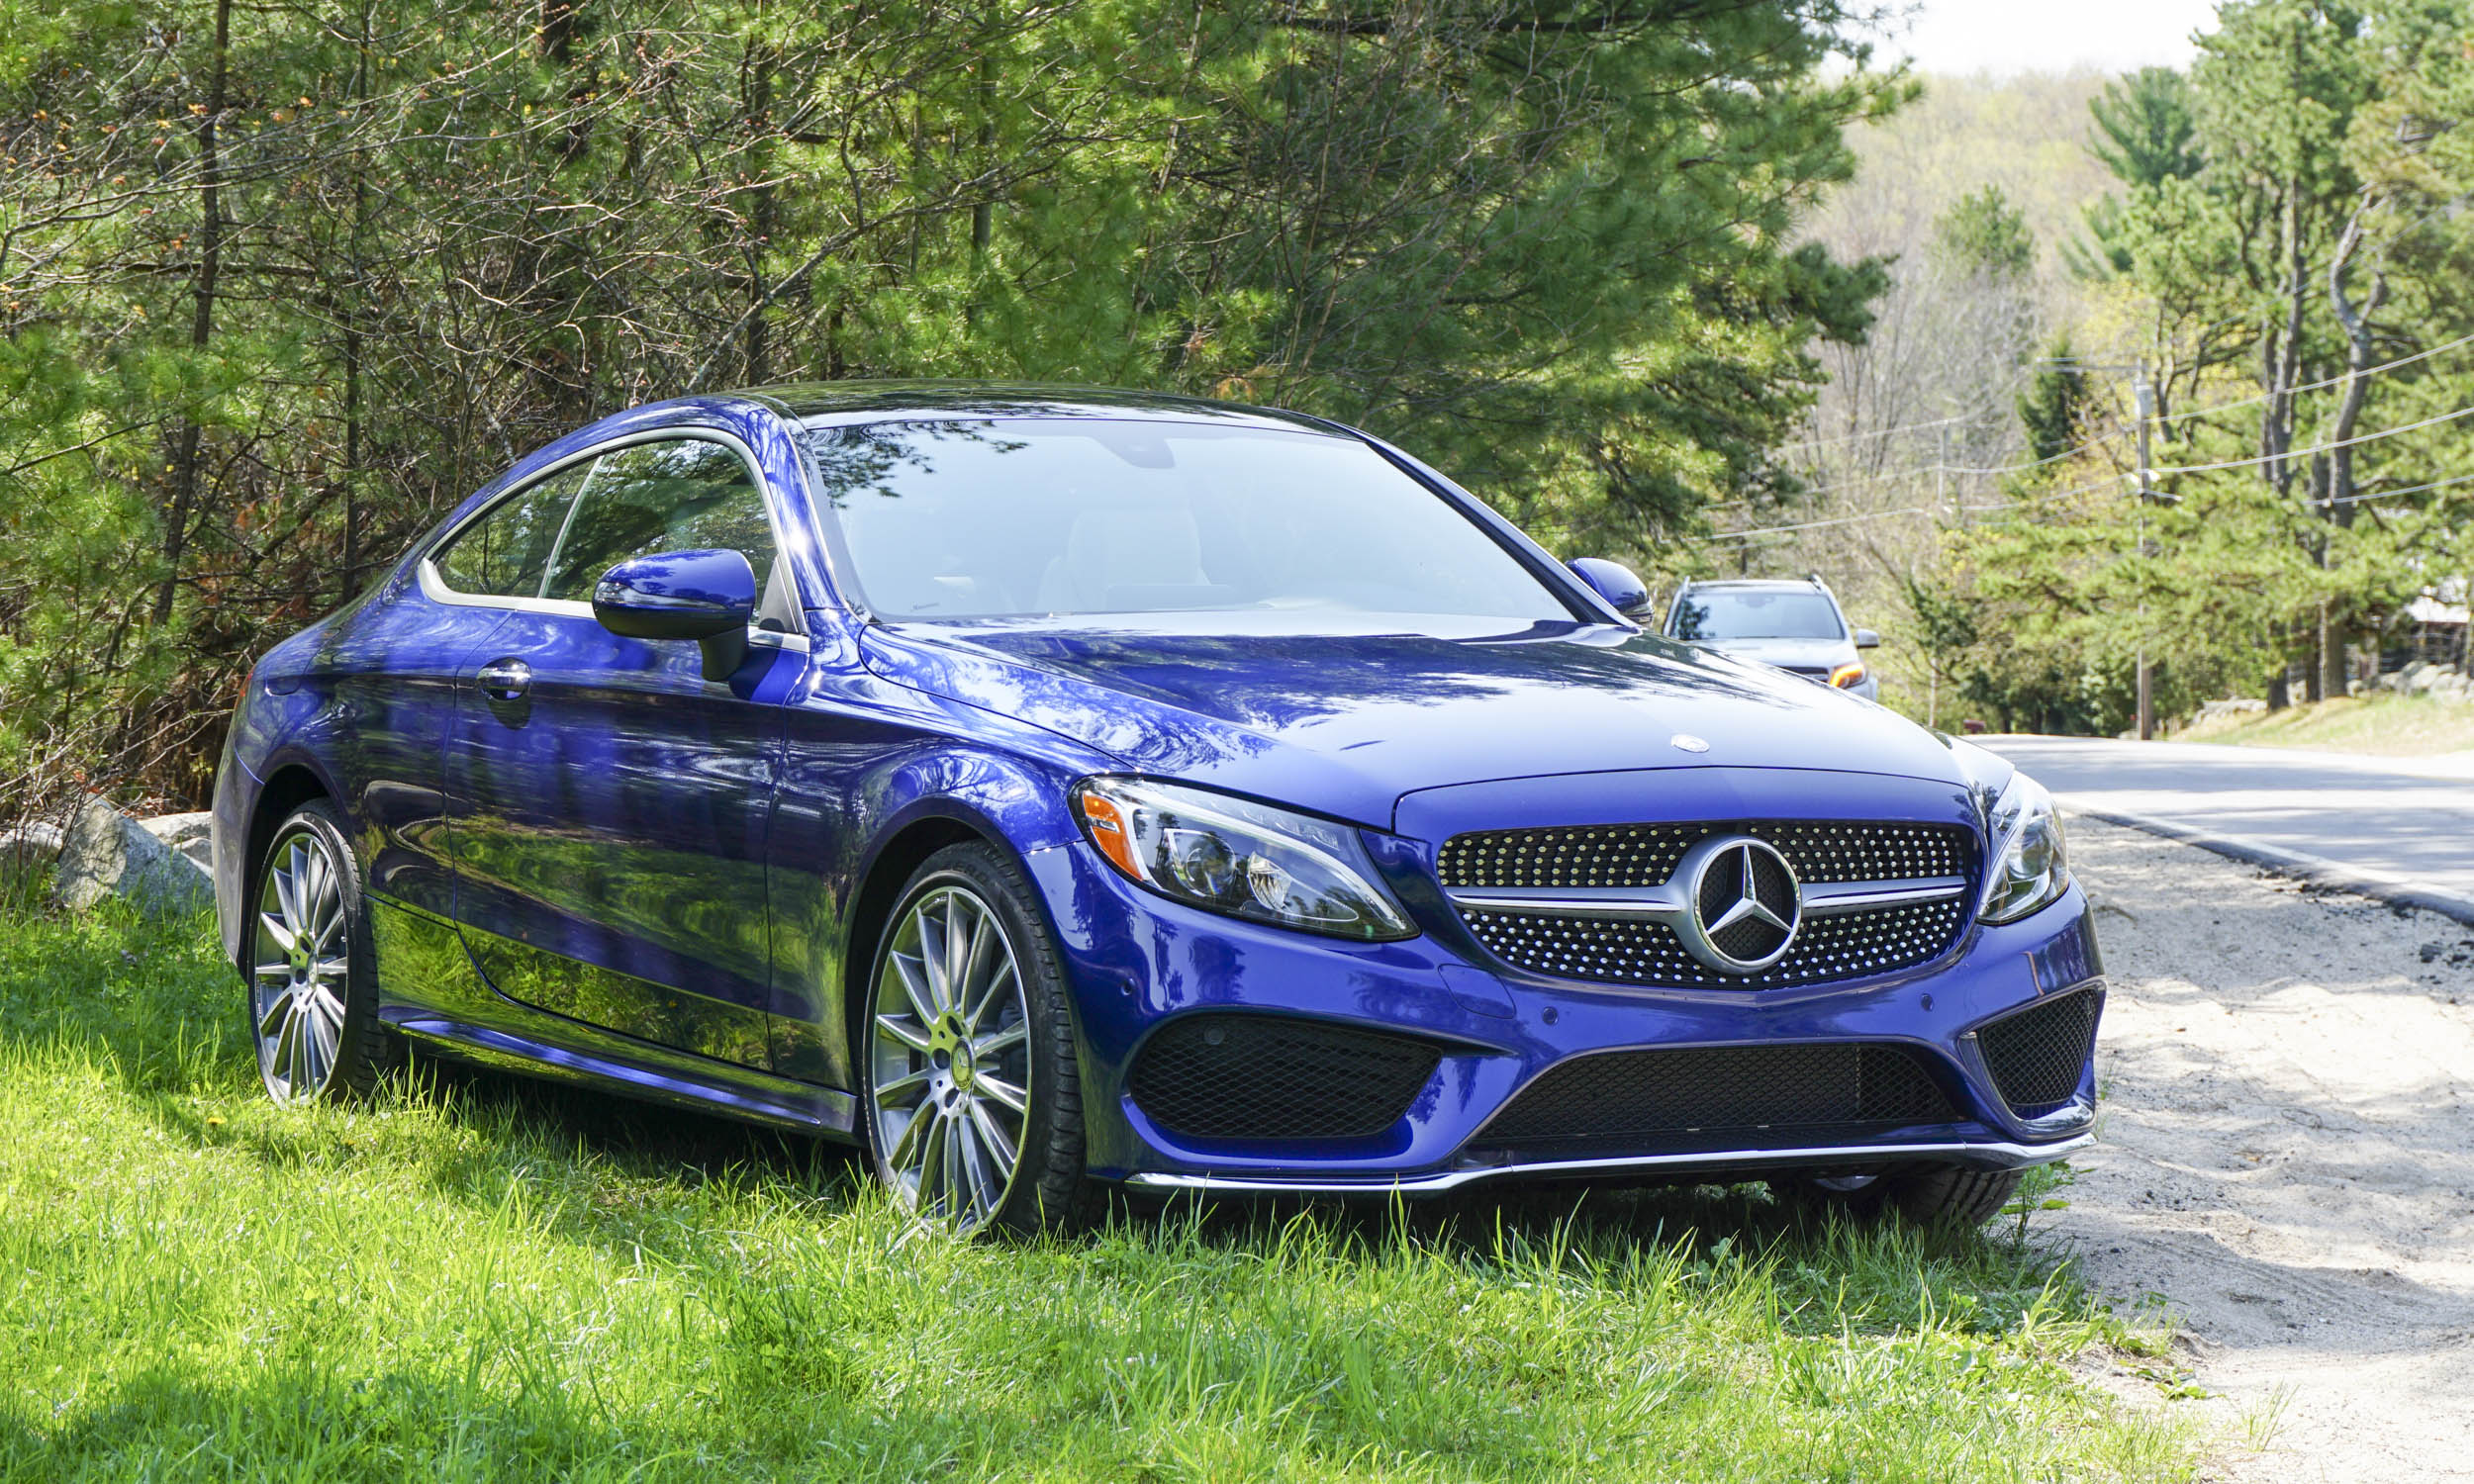 2017 mercedes benz c class coupe first drive review for Mercedes benz c class coupe 2016 price